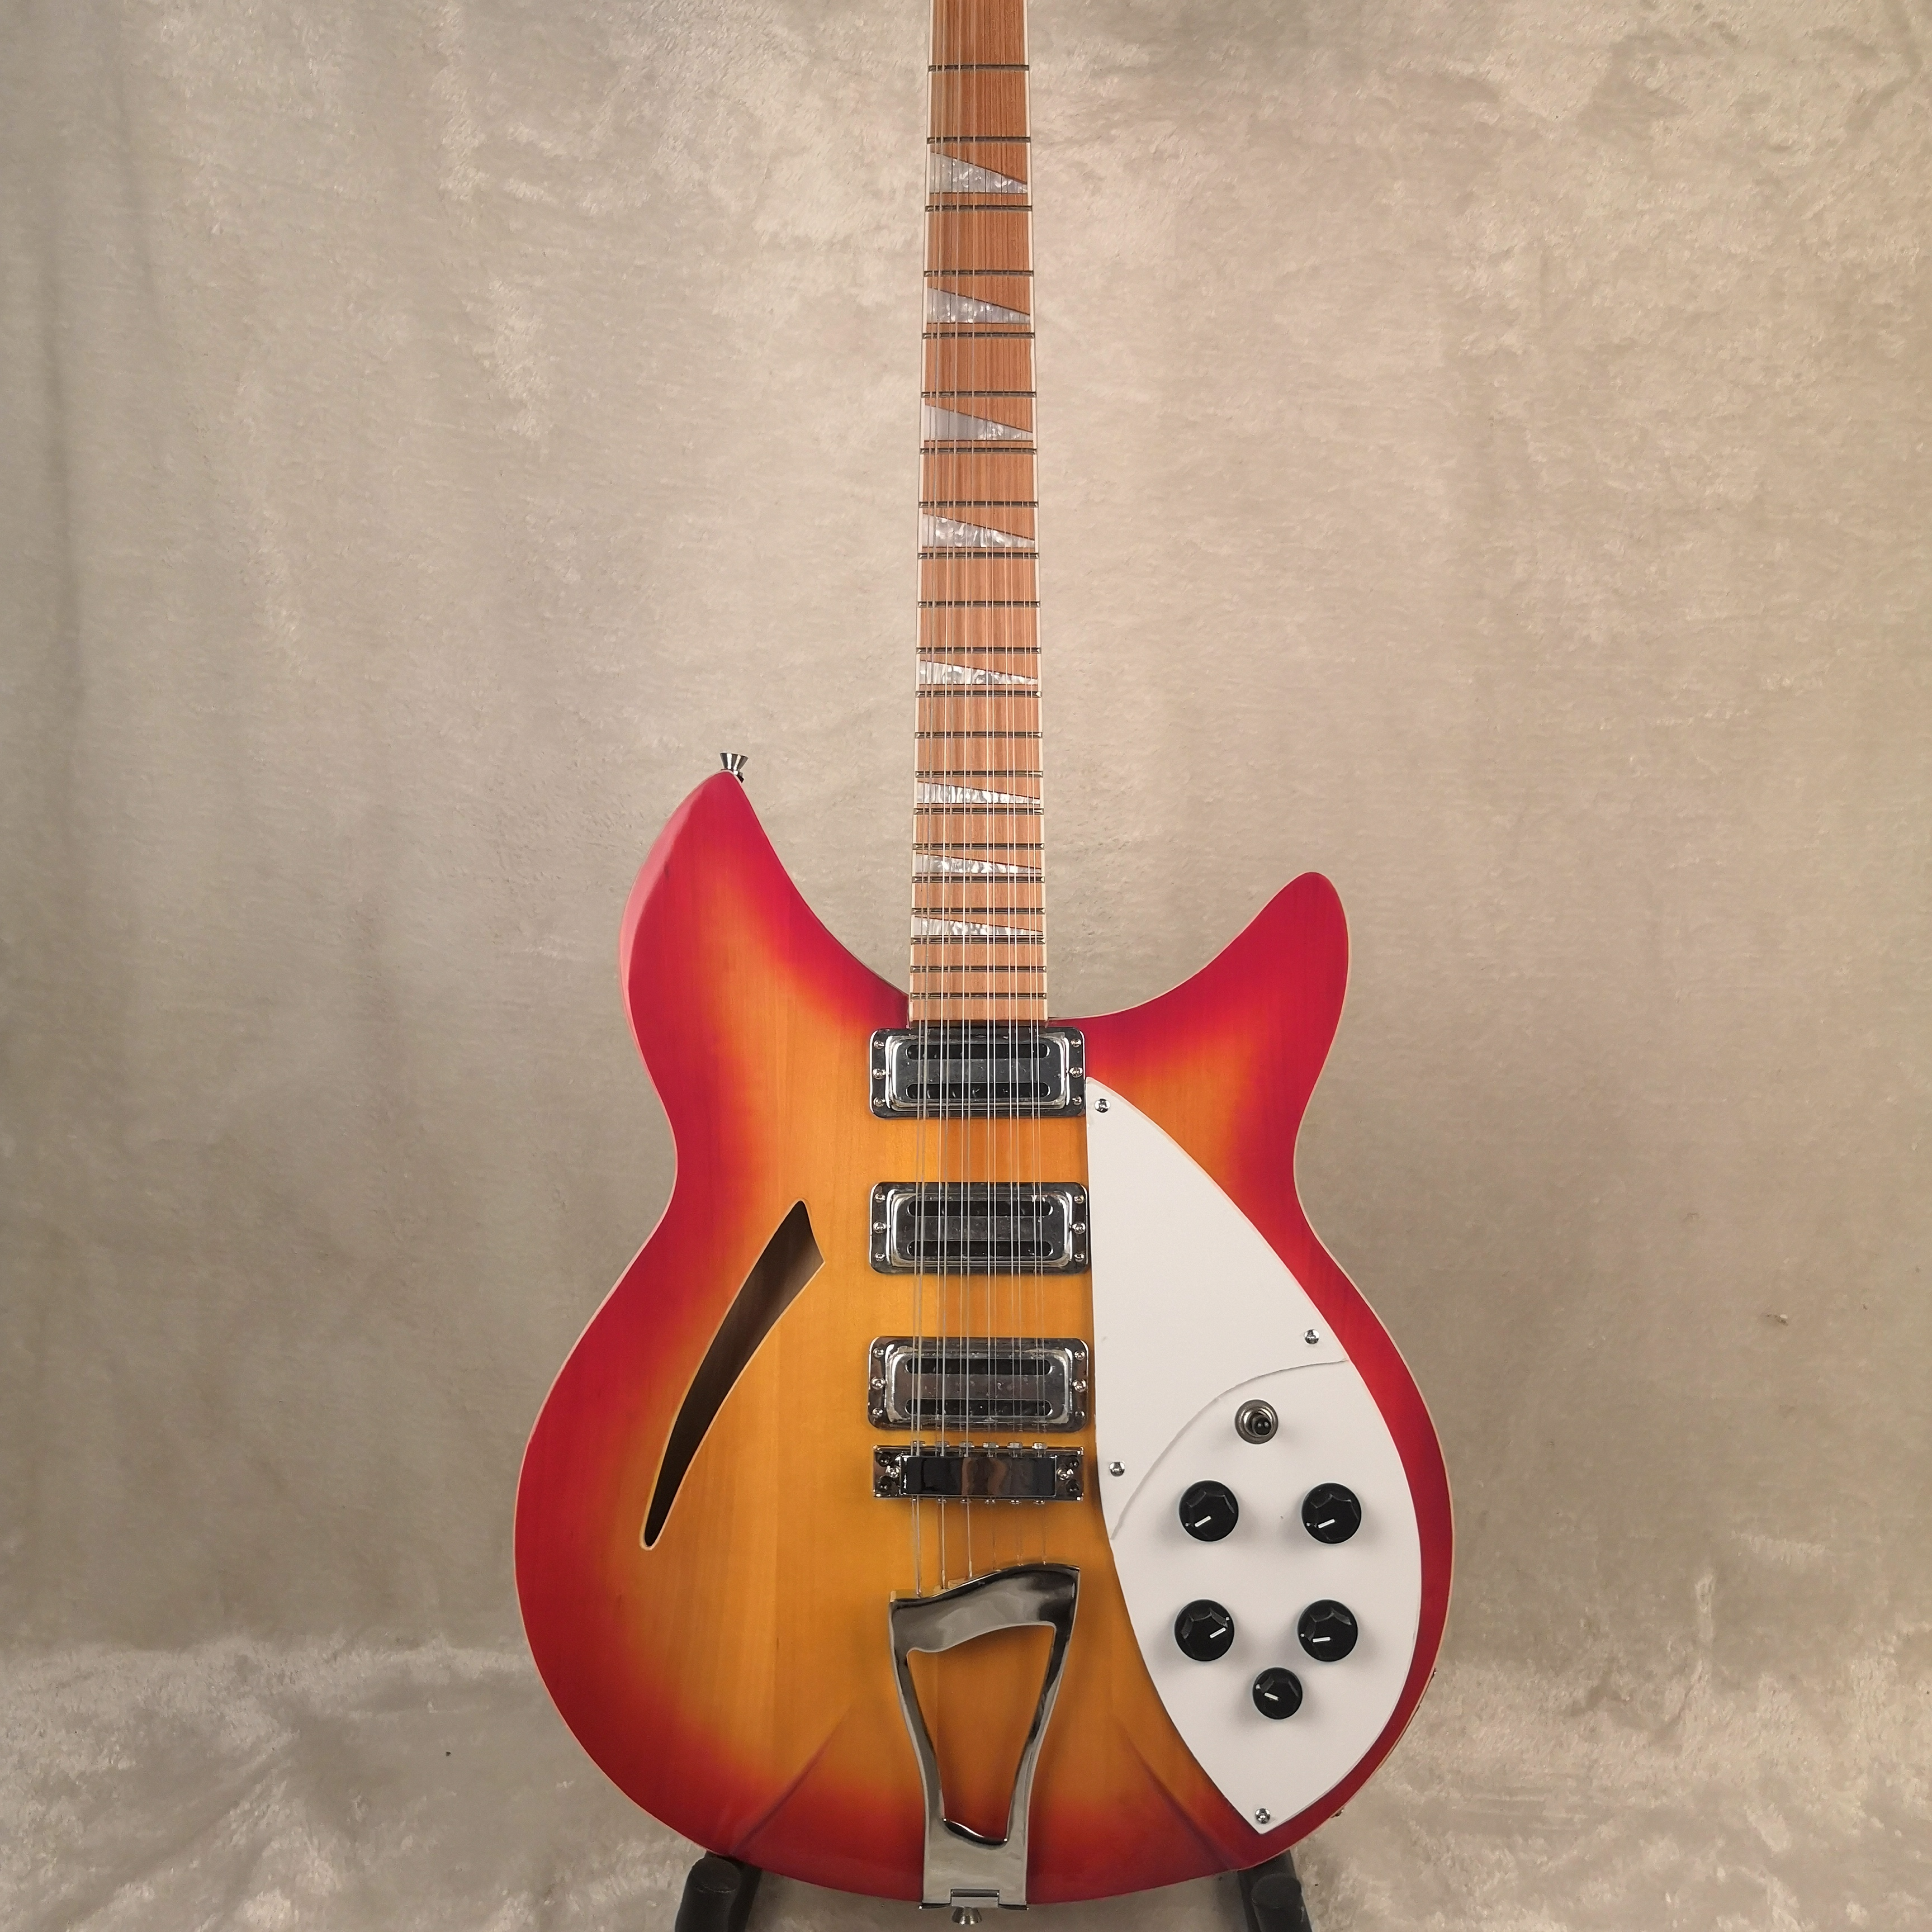 2020 12 String Electric <font><b>Guitar</b></font>, Ricken <font><b>360</b></font> <font><b>Guitar</b></font>,Cherry red Burst body,Rosewood fingerboard image